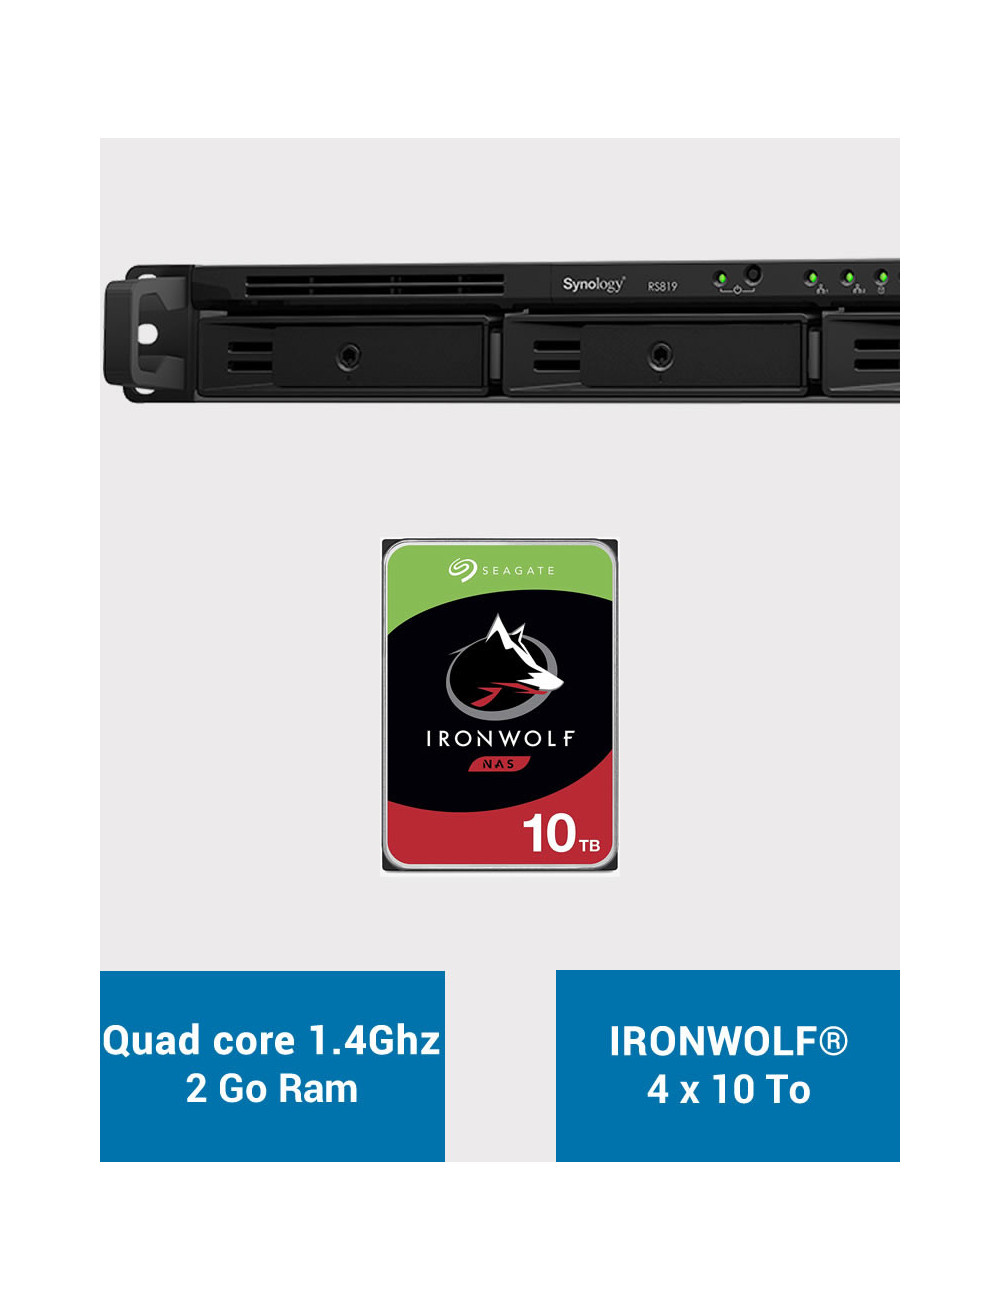 Synology RS819 Serveur NAS IRONWOLF 40To (4x10To)